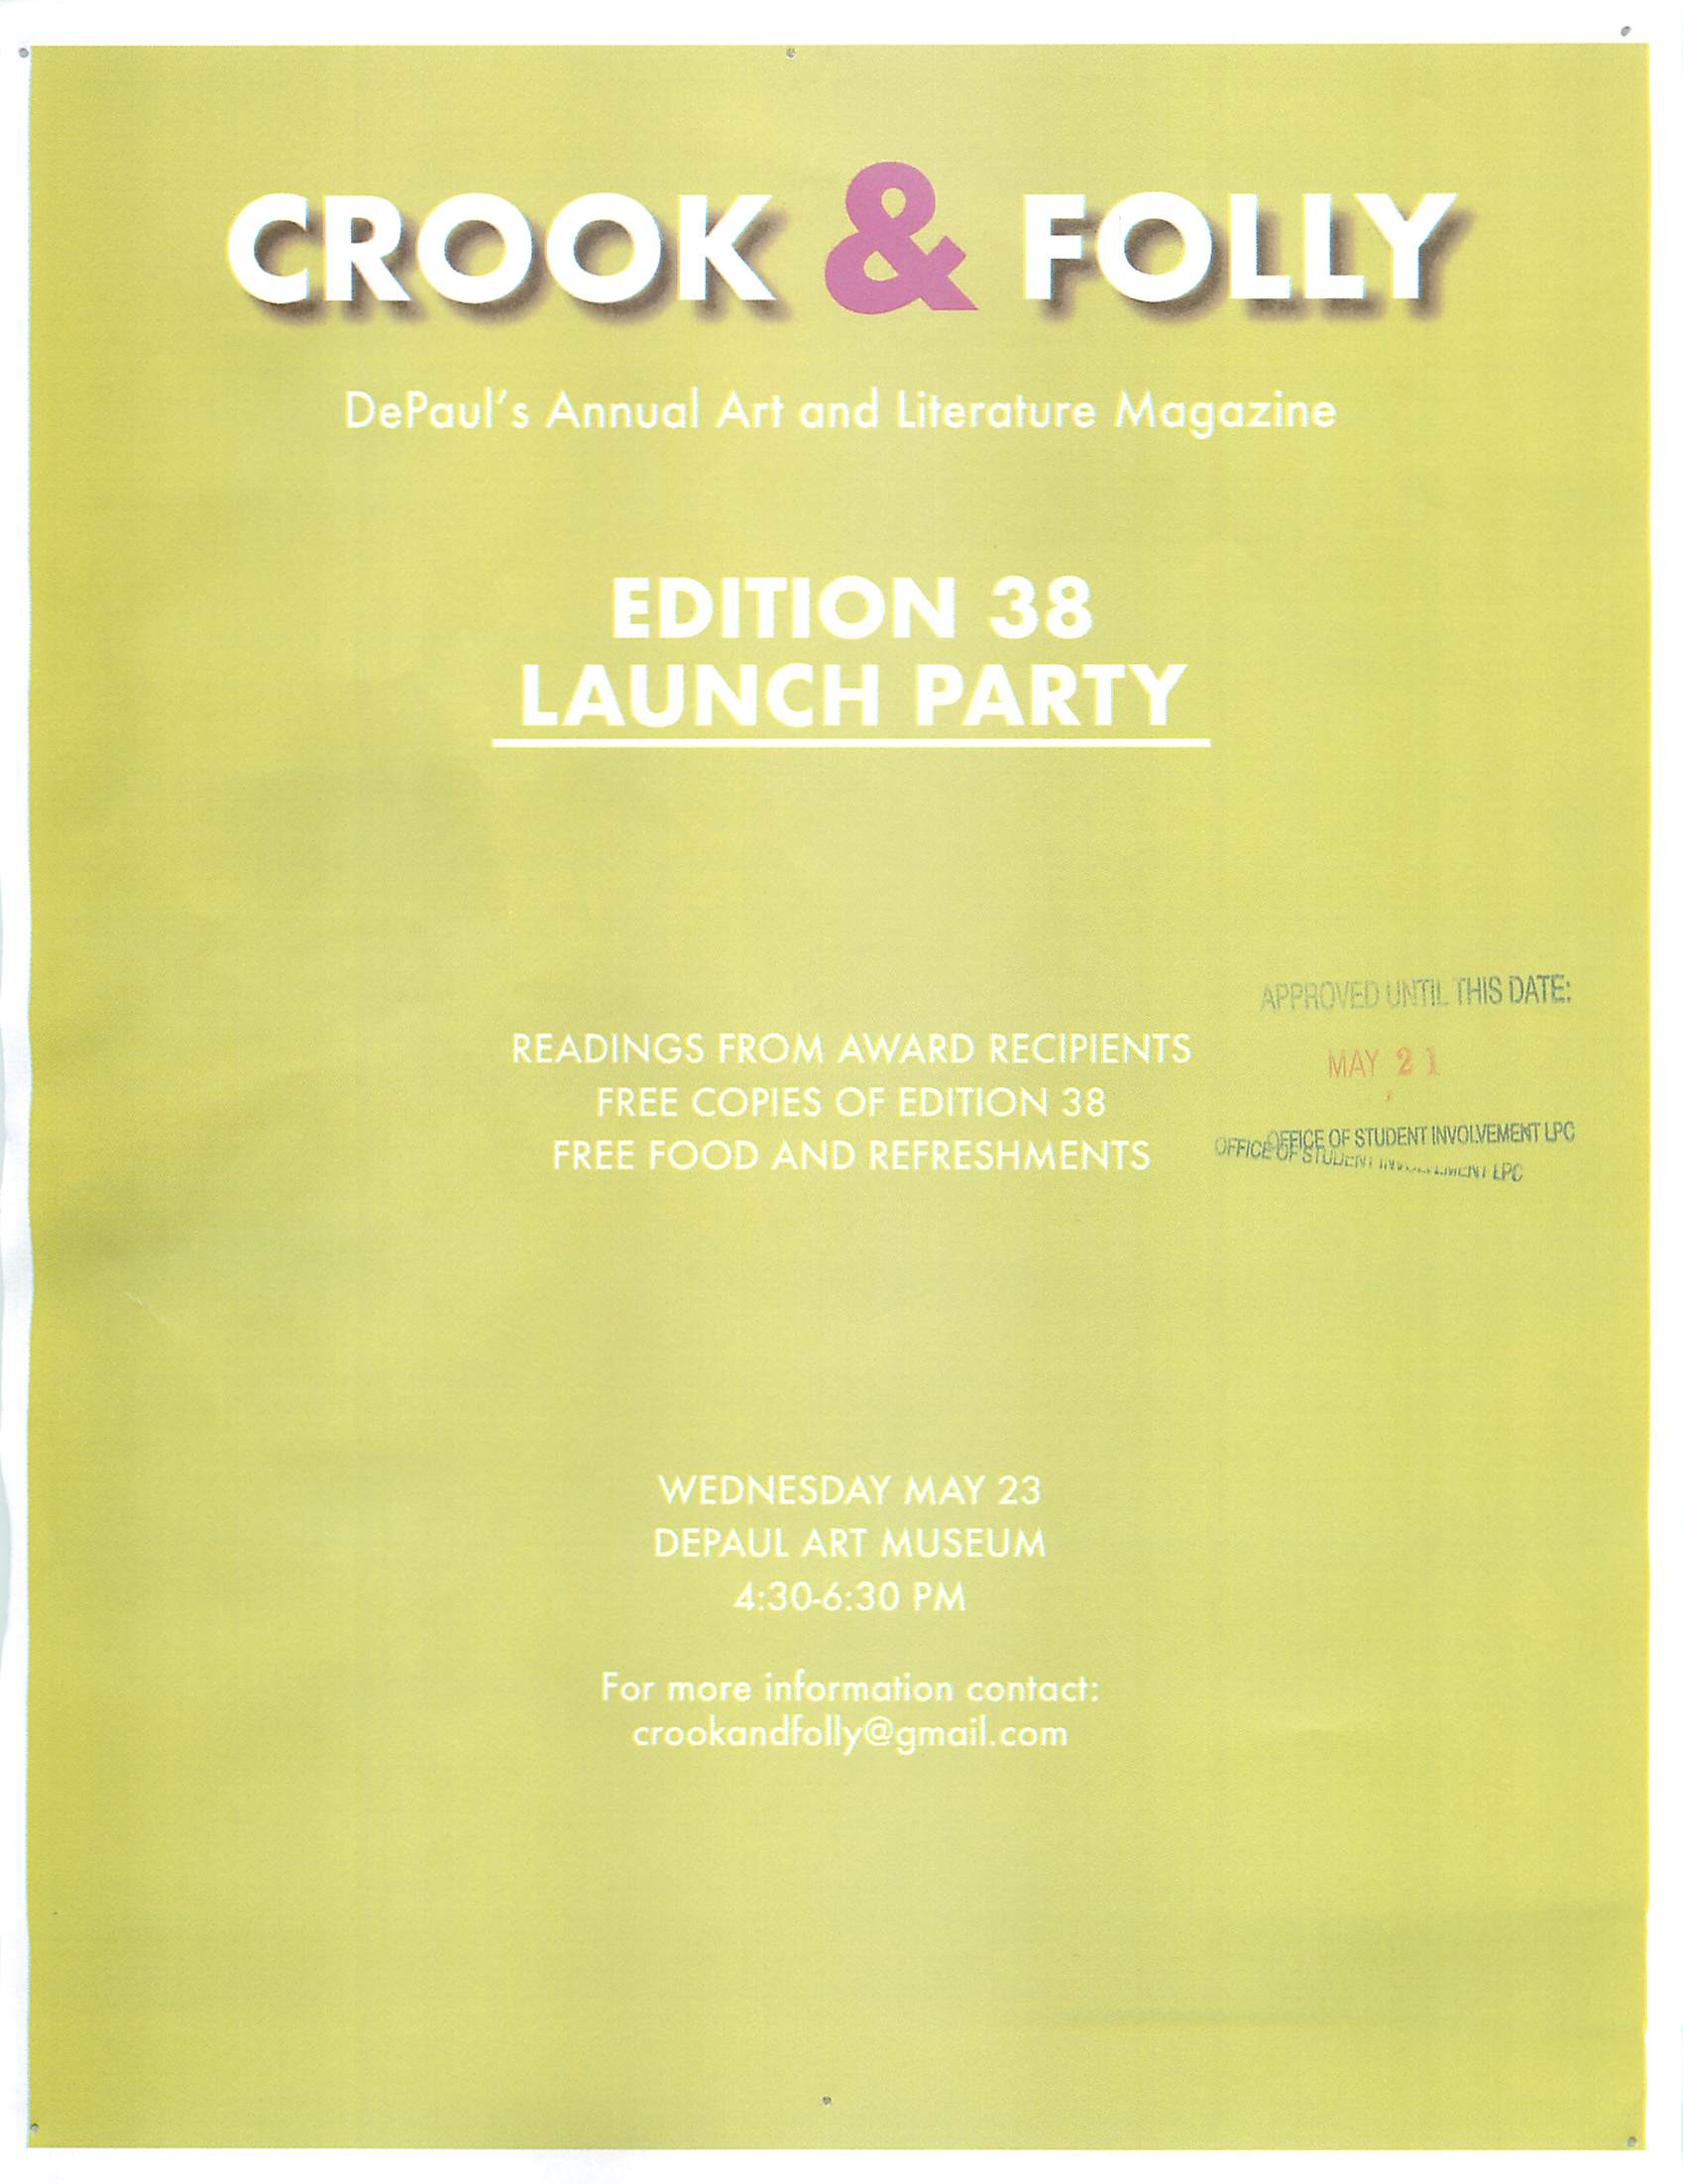 Crook & Folly Launch Party